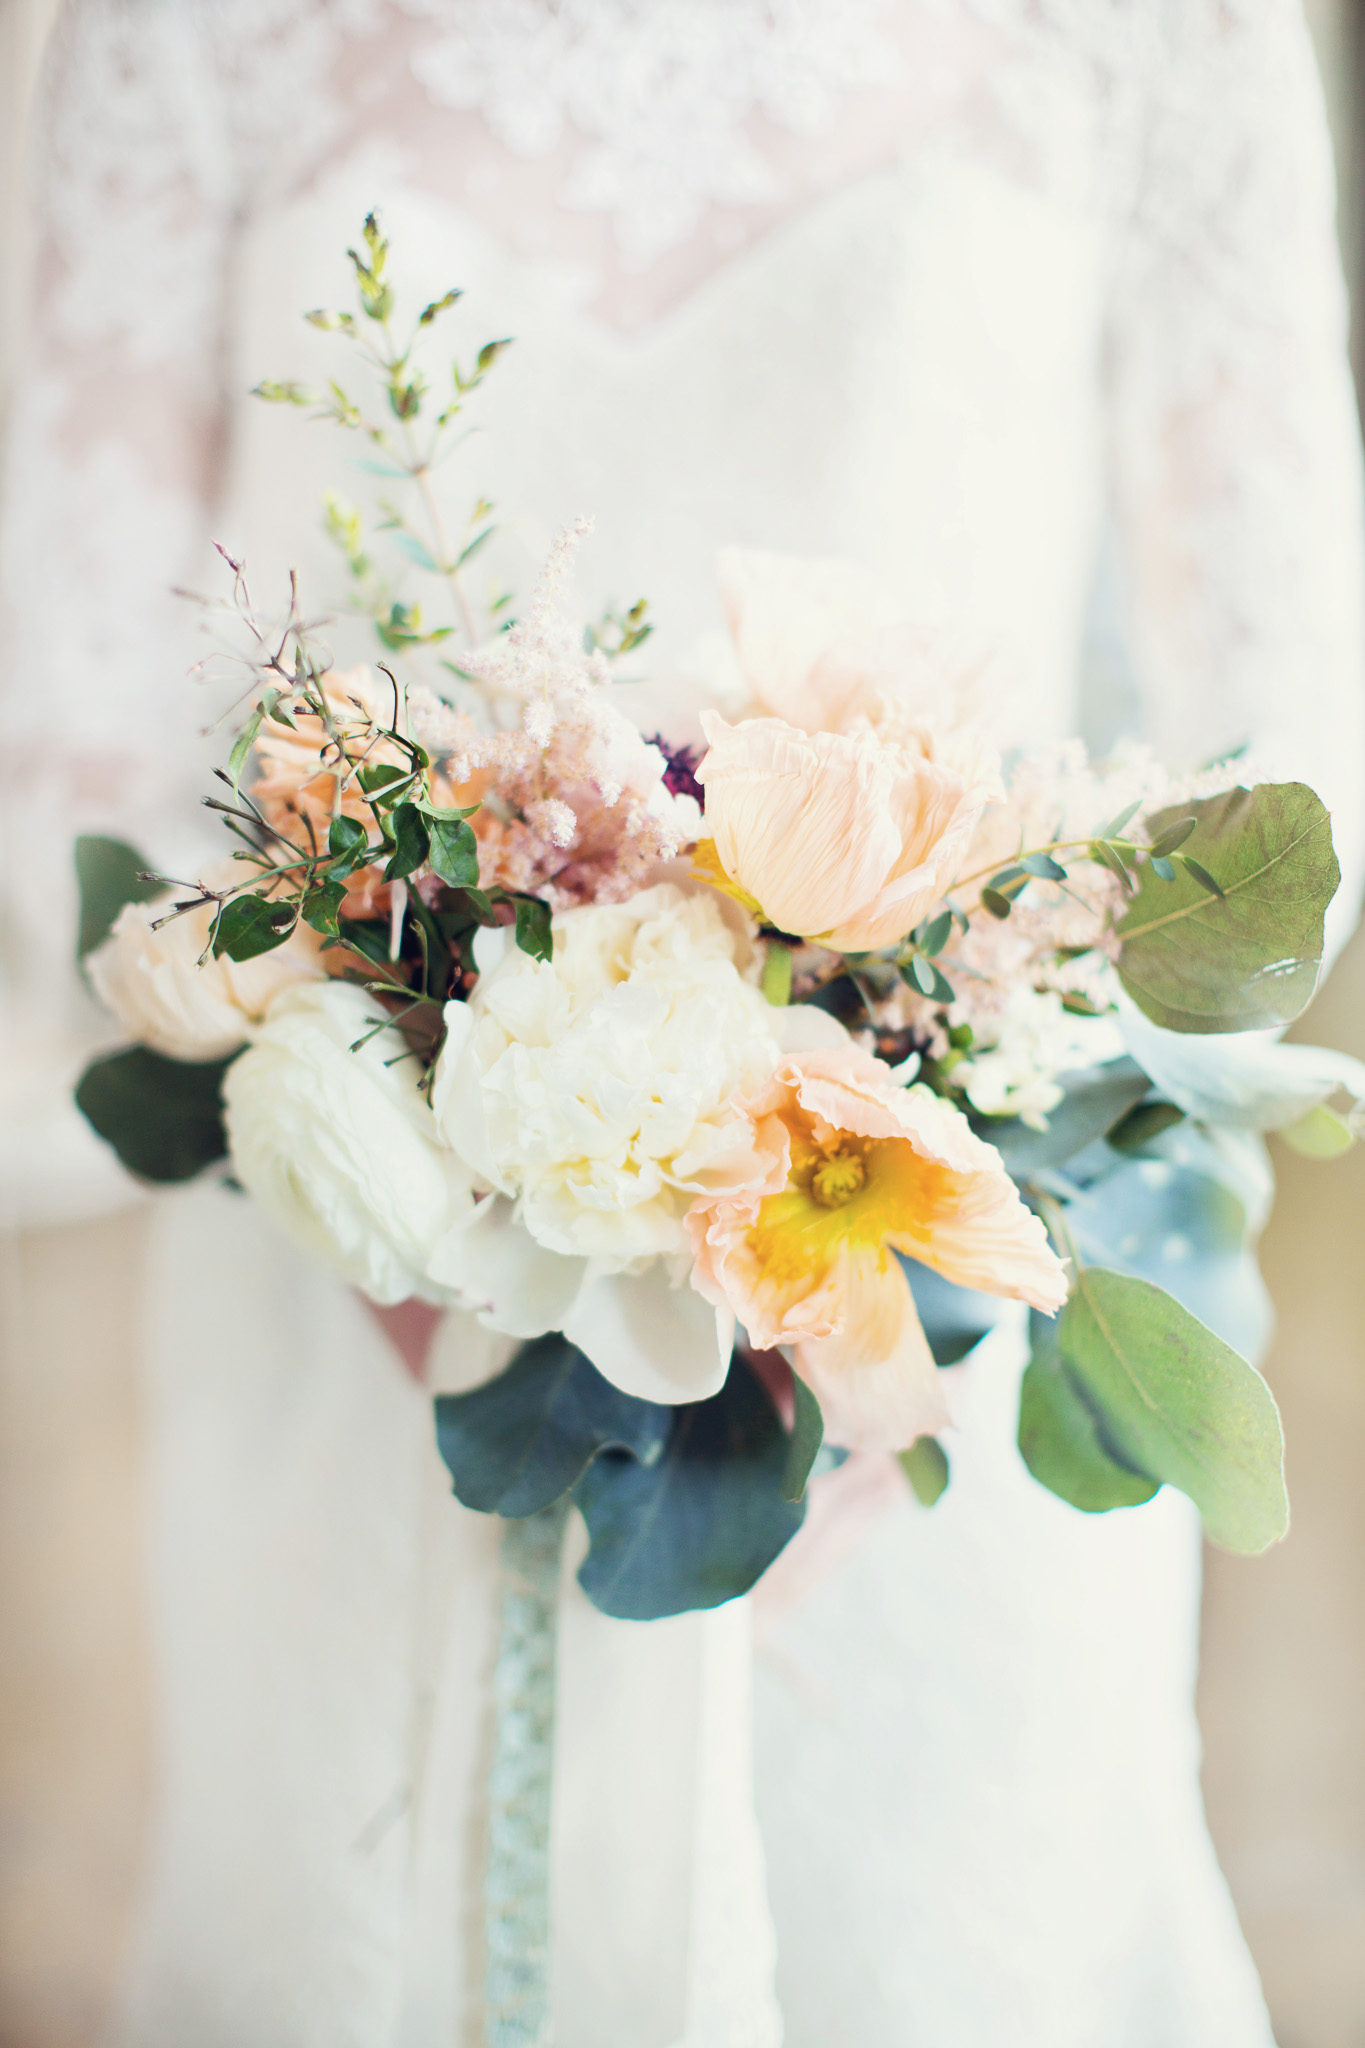 Images by Peaches + Mint Photography